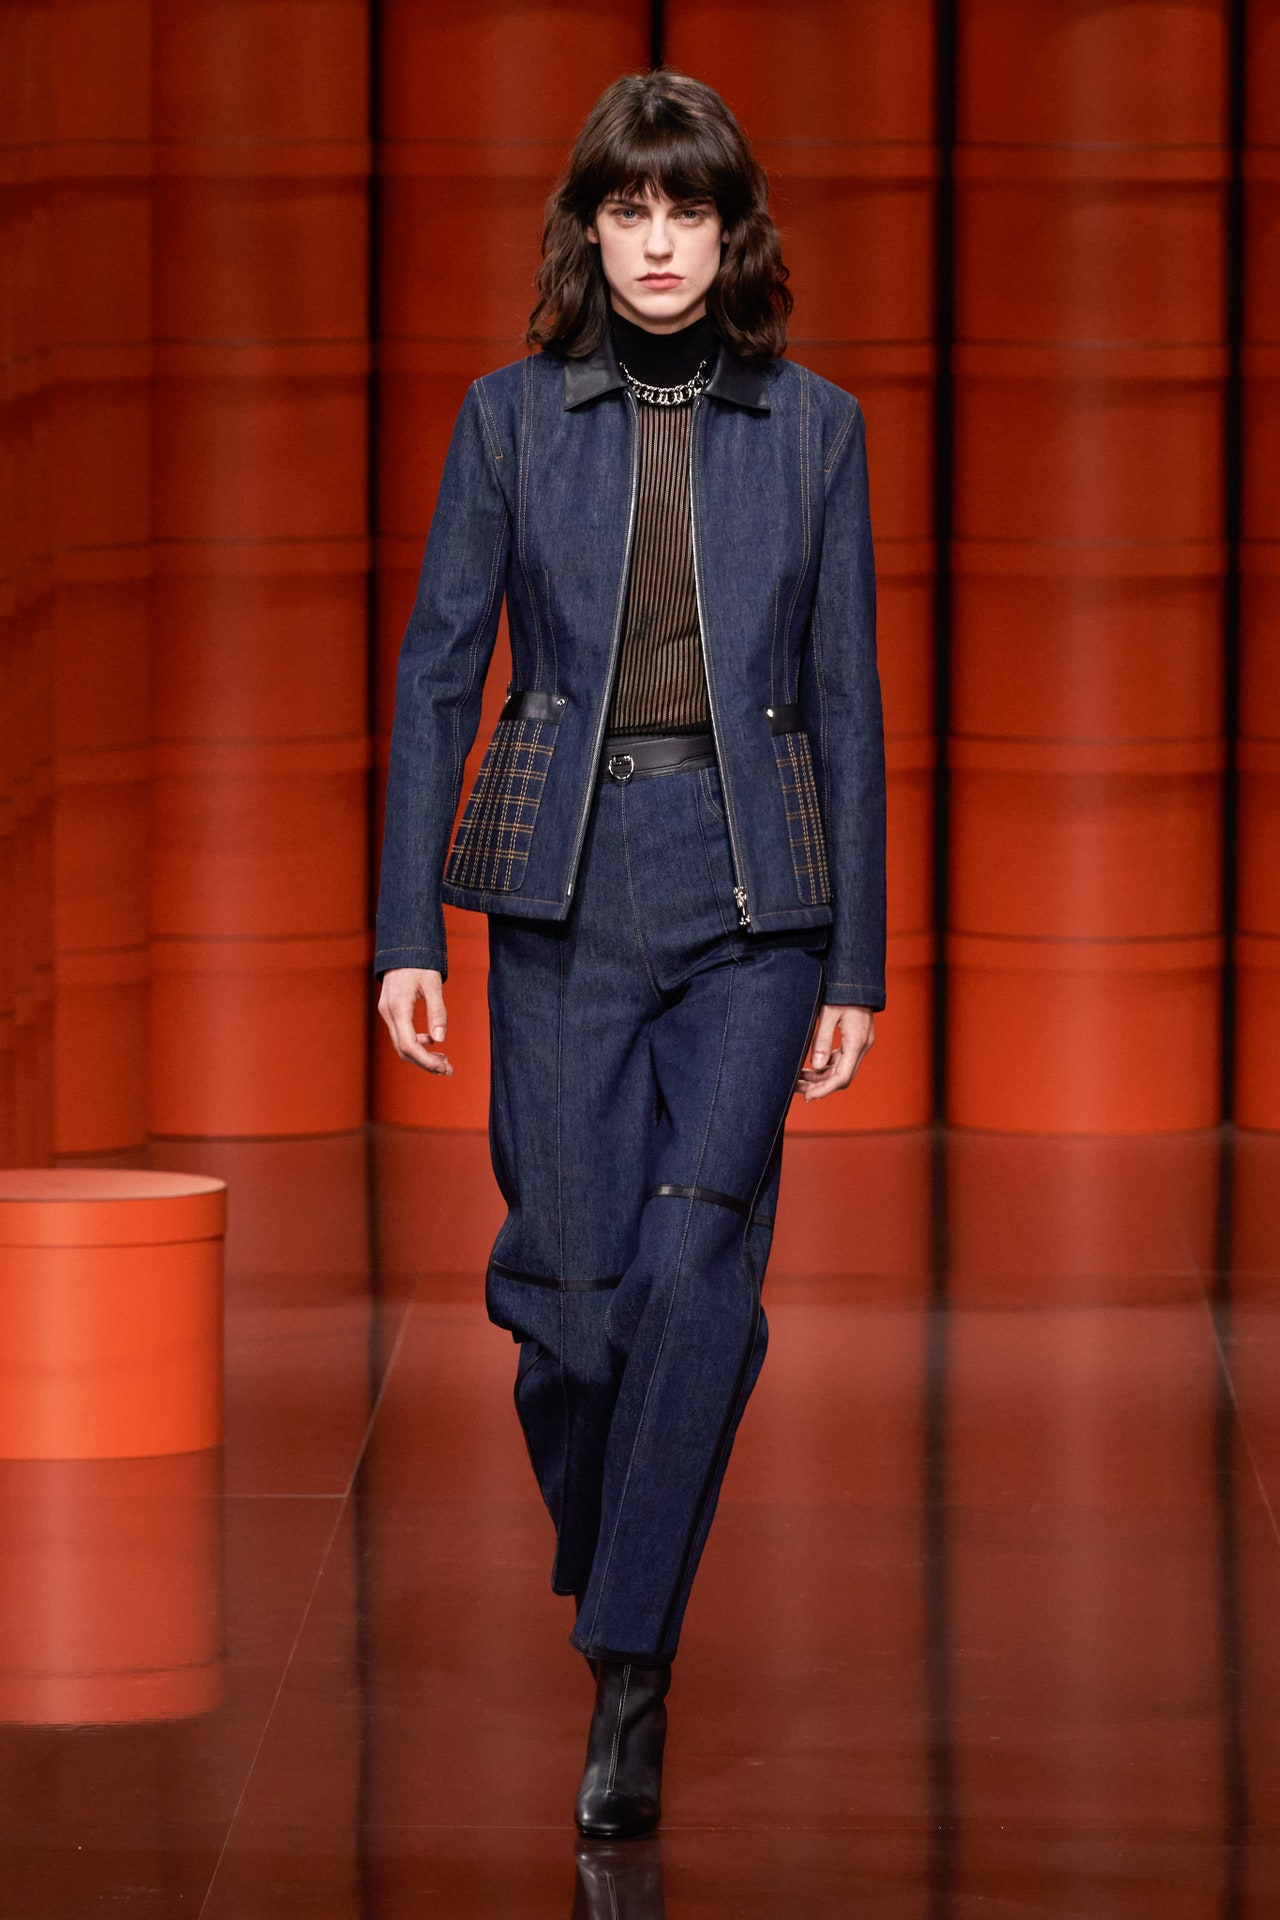 HERMES-fall-2021 Top 10 Fashion Brands Rising in 2021